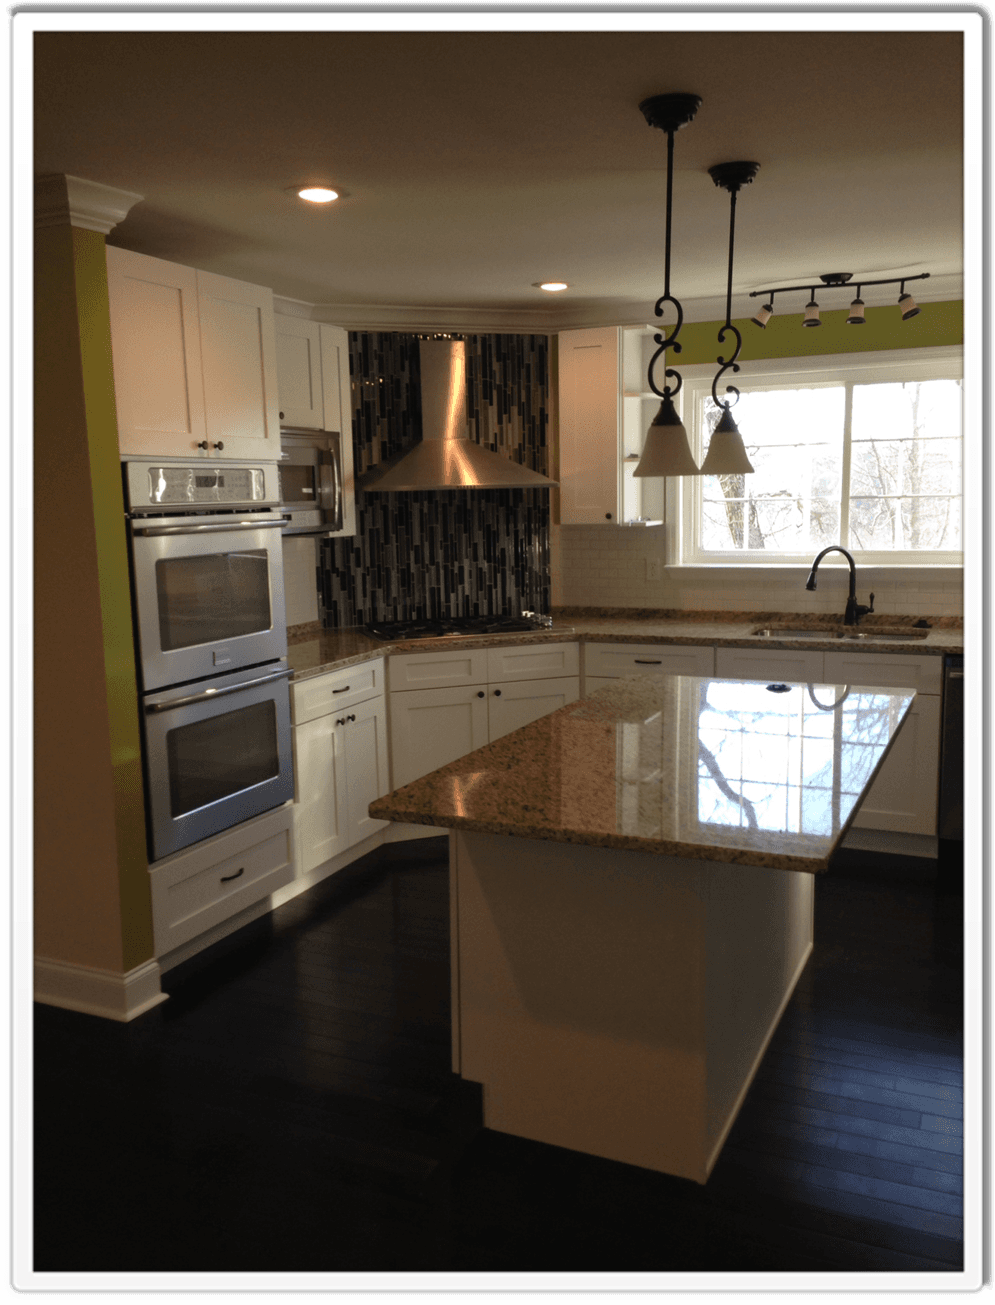 Kitchen Bath Remodeling In Chattanooga J Construction Services - Kitchen remodeling chattanooga tn